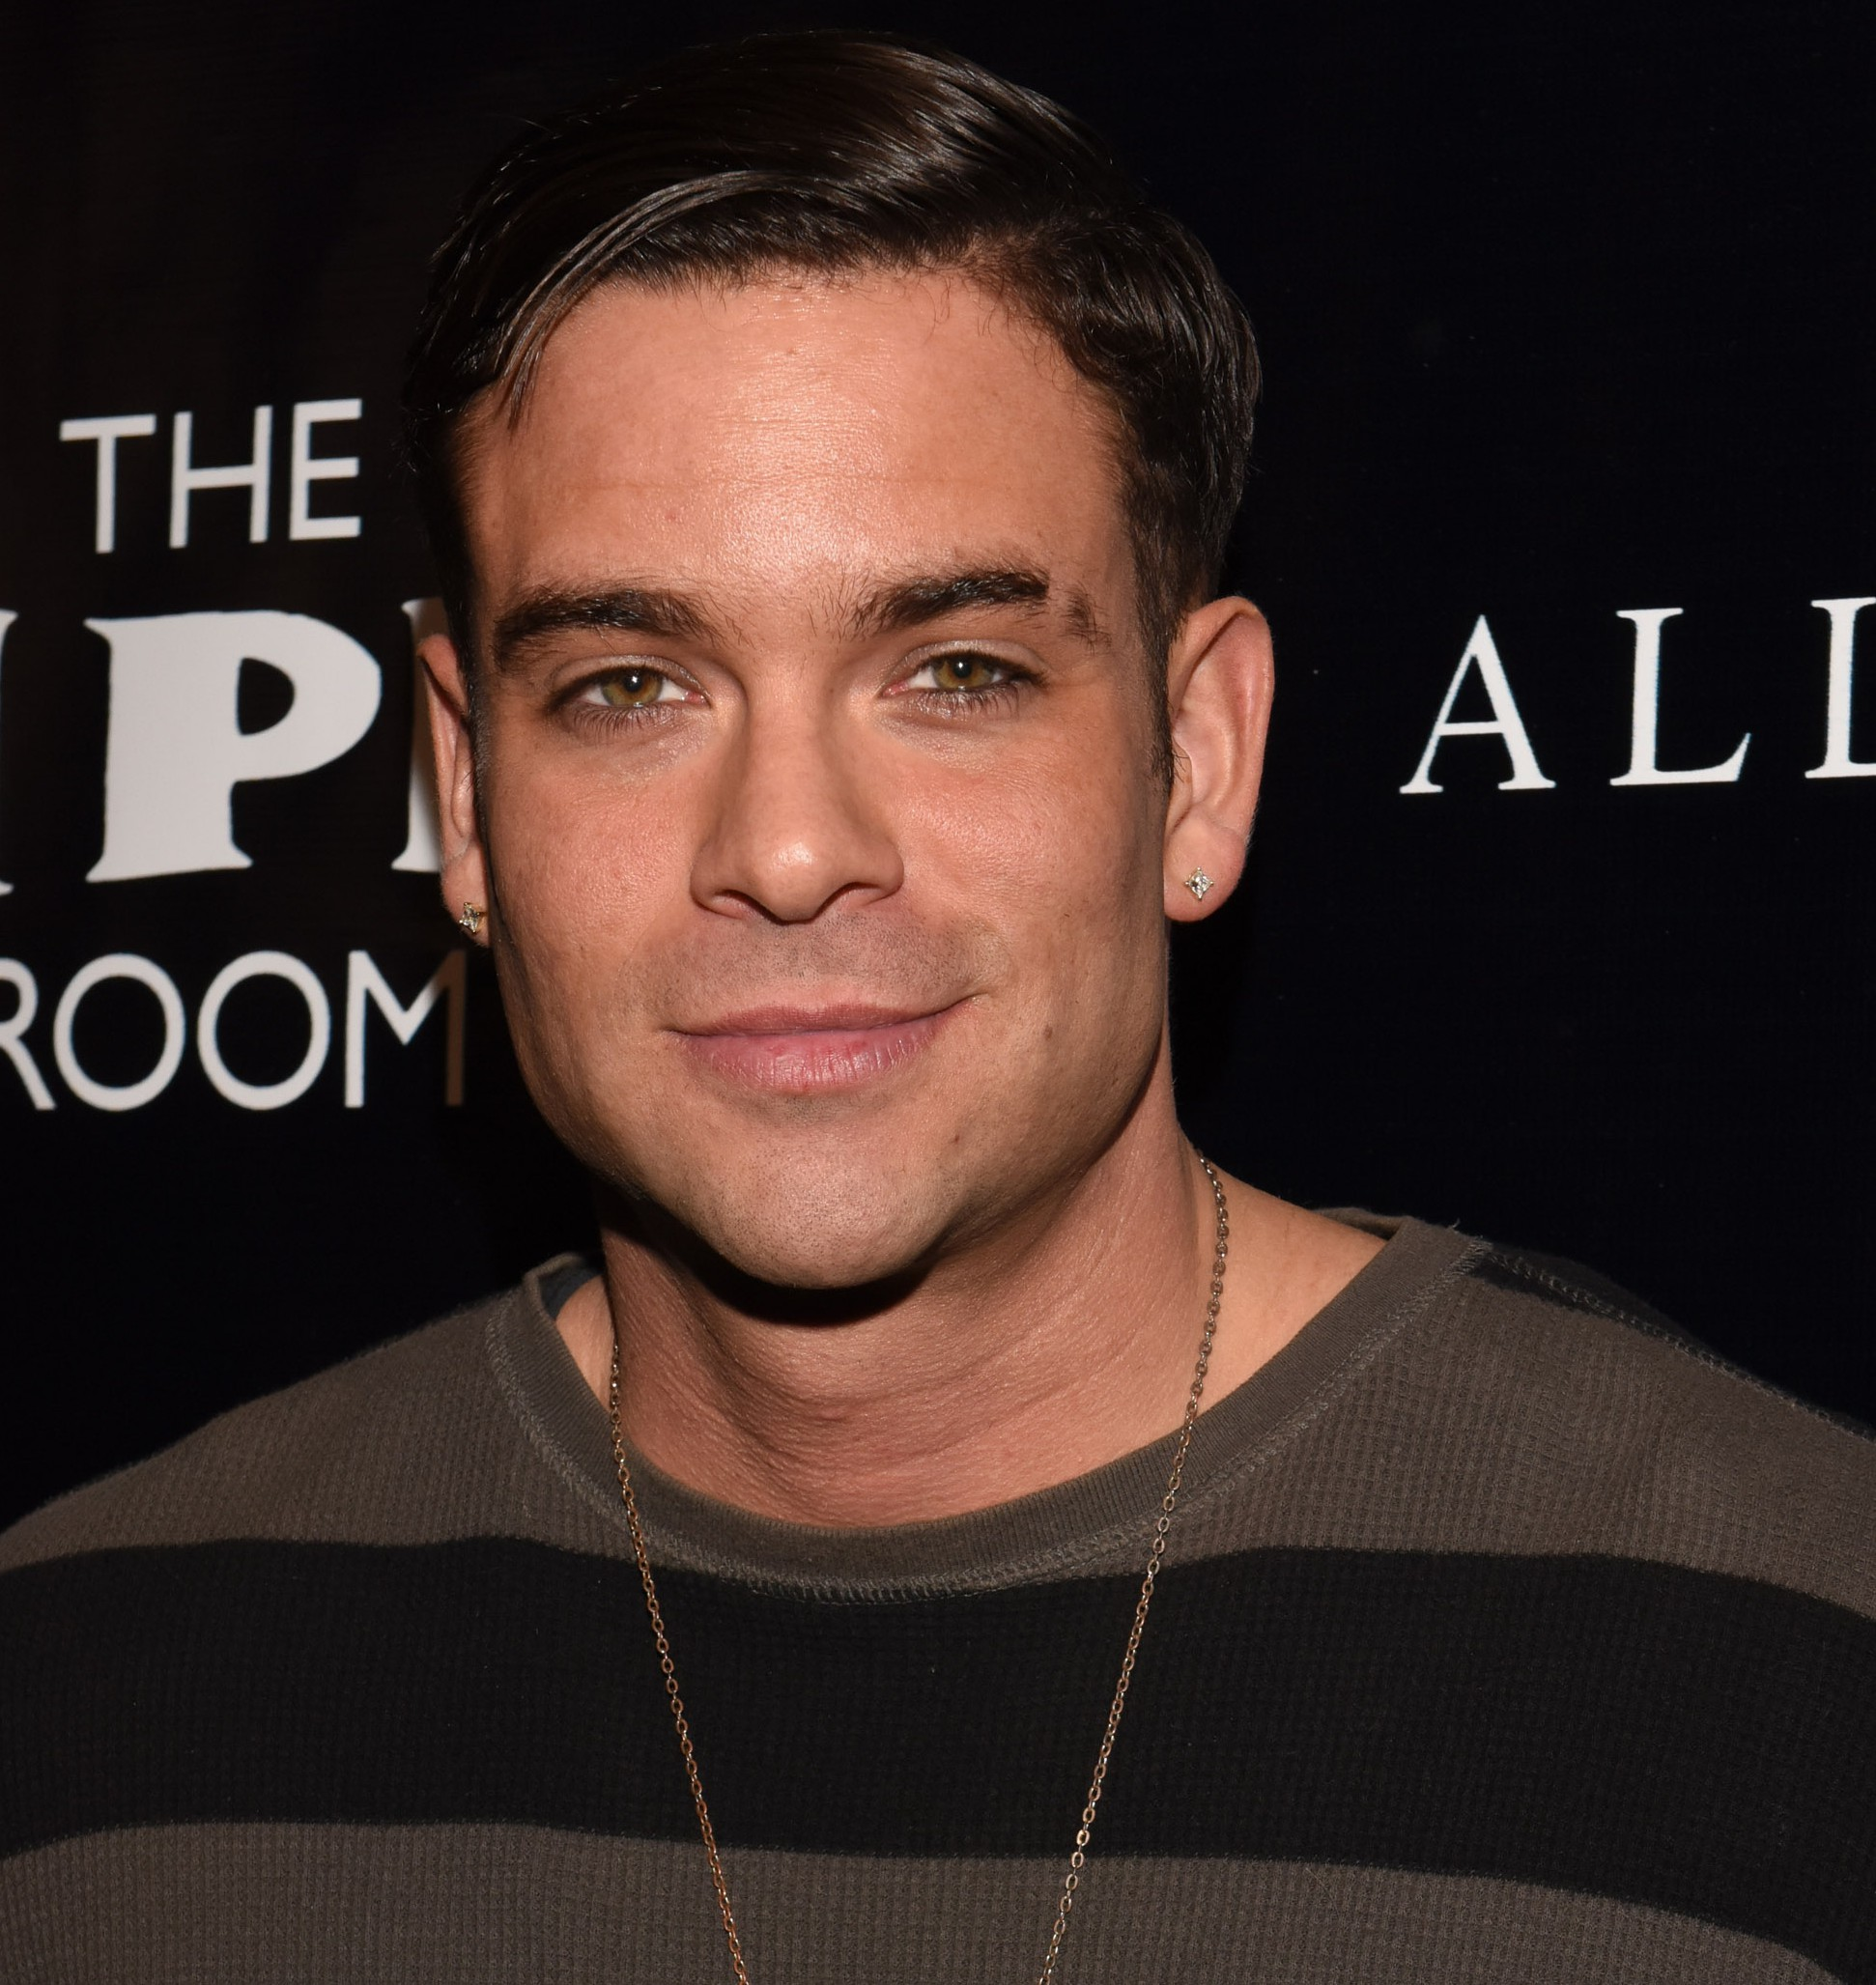 Mark Salling, Mark Salling child porn, mark salling arrested